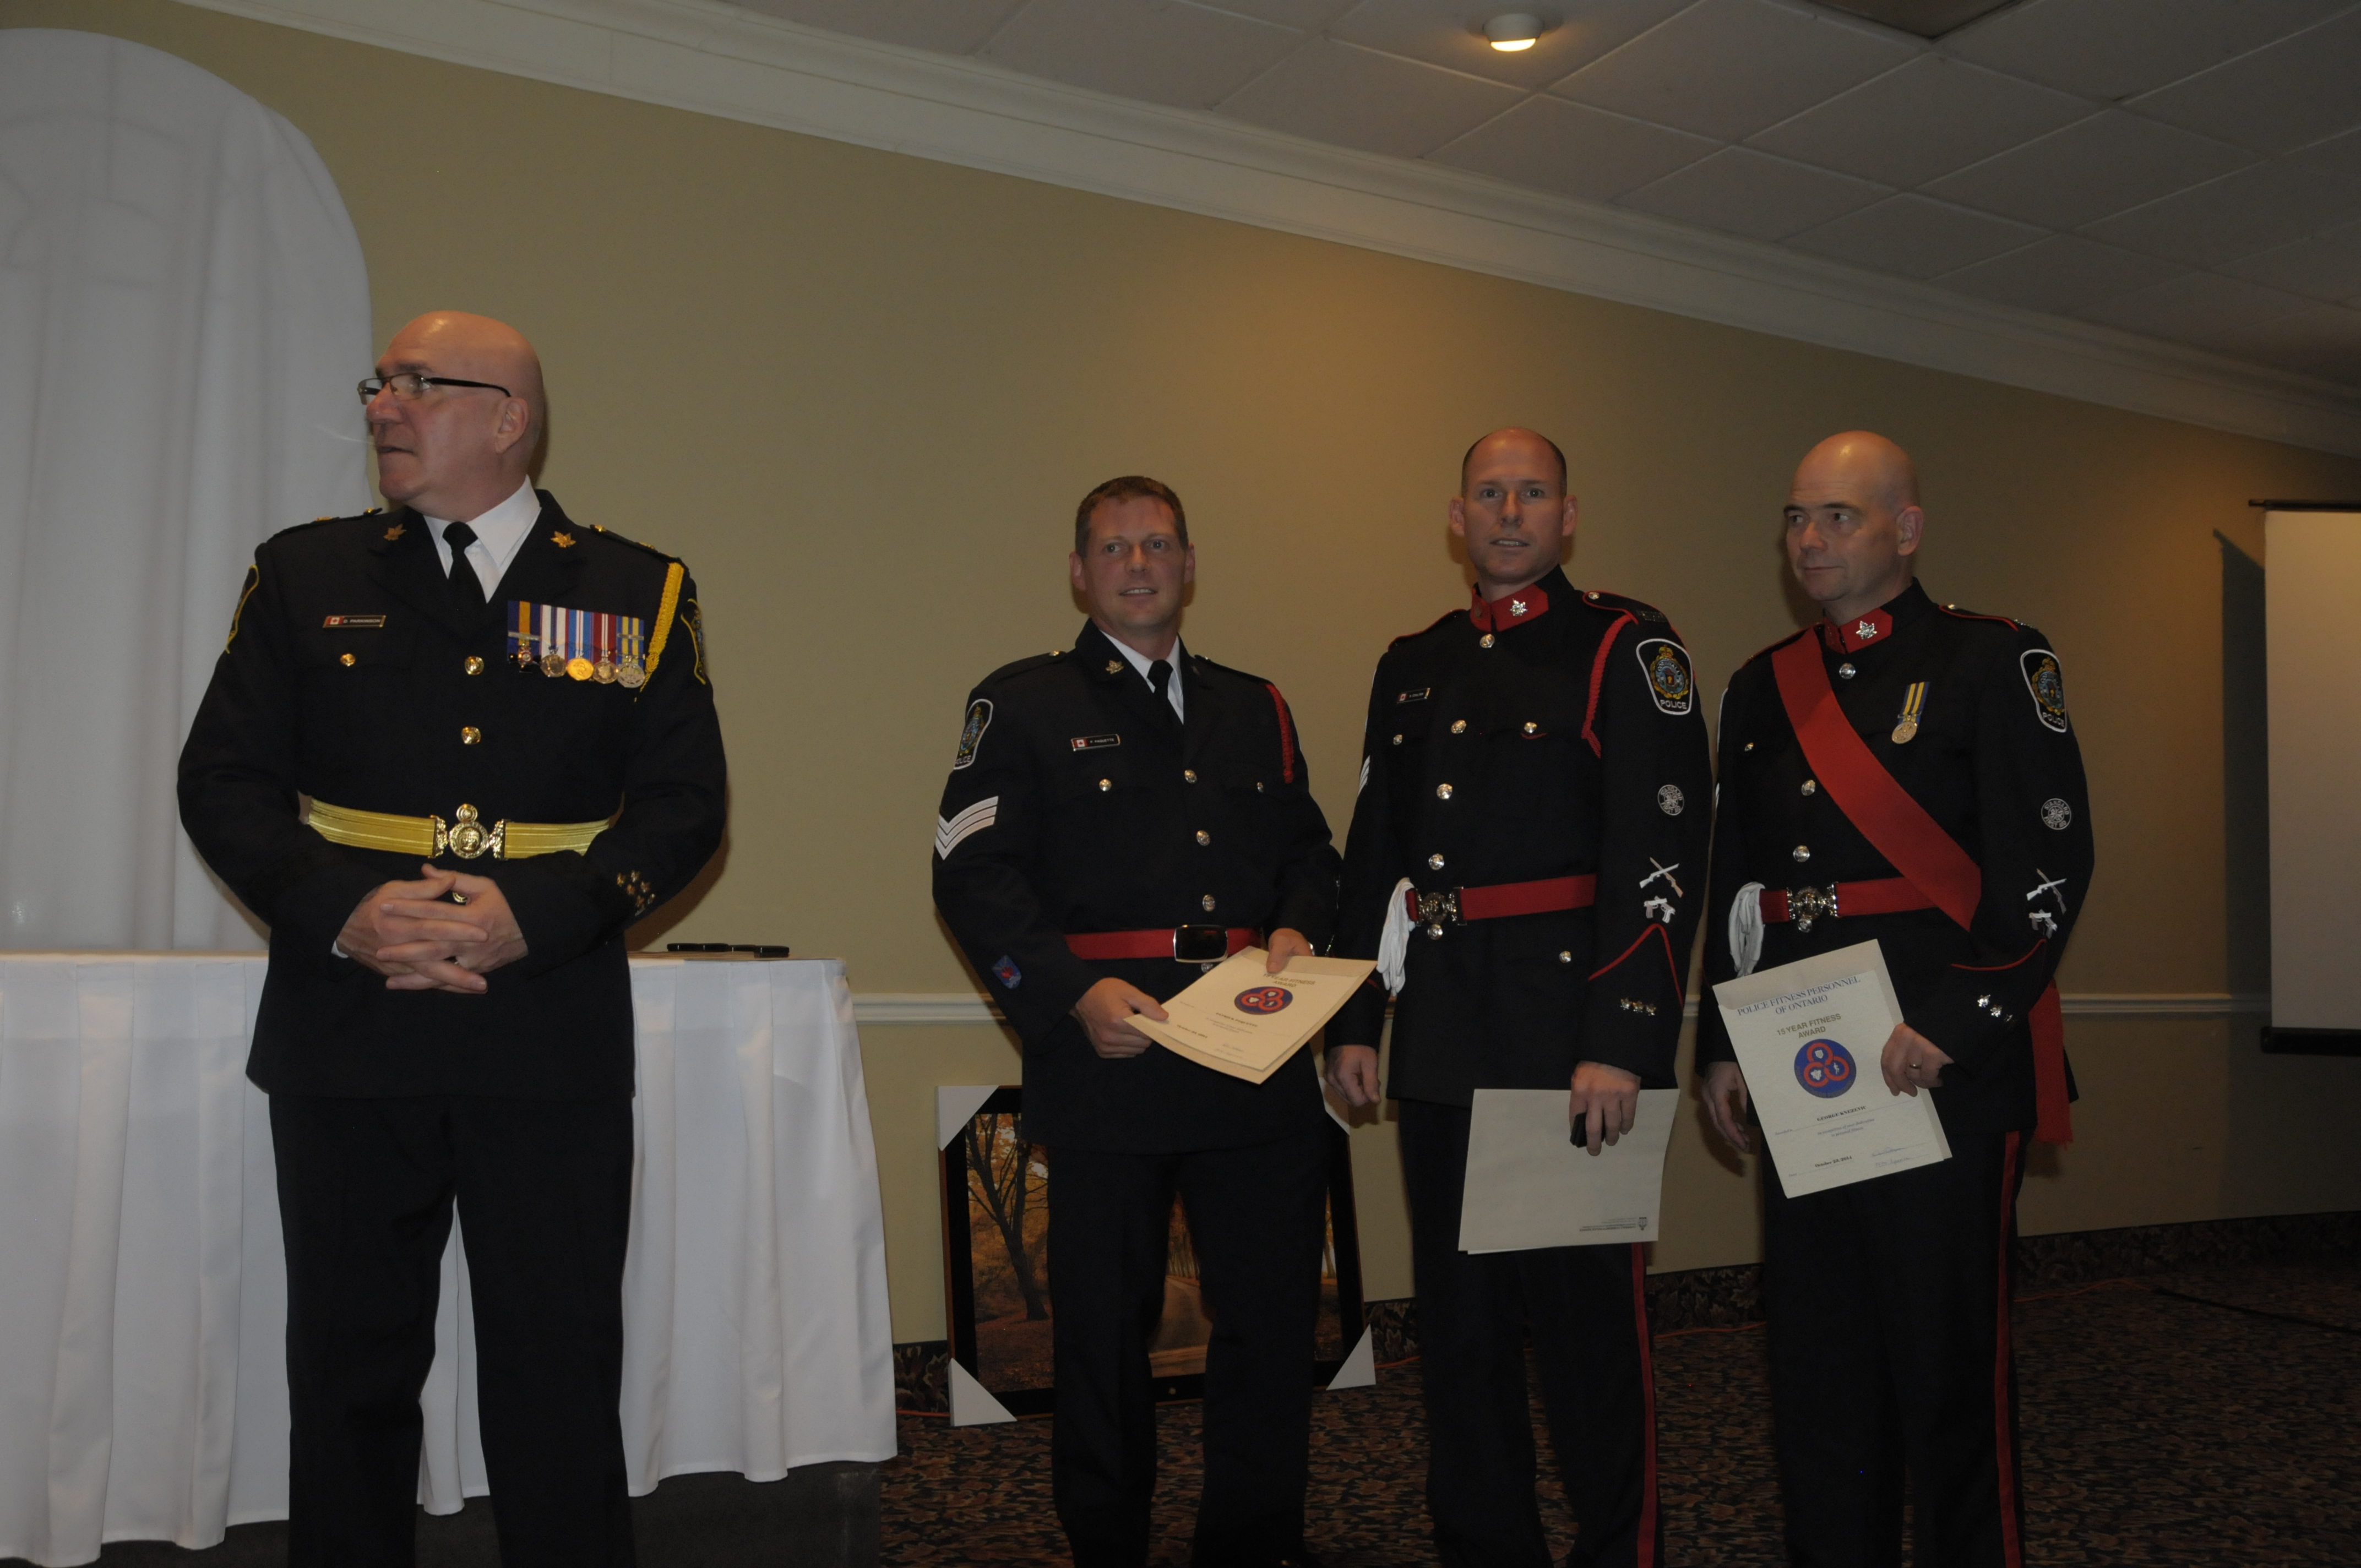 Police Chief Dan Parkinson (left) with the 15 year police fitness award recipients. They are (from left) are Const. Patrick Paquette, Sgt. Scott Coulter and Sgt. George Knezevic. (Cornwall Newswatch)